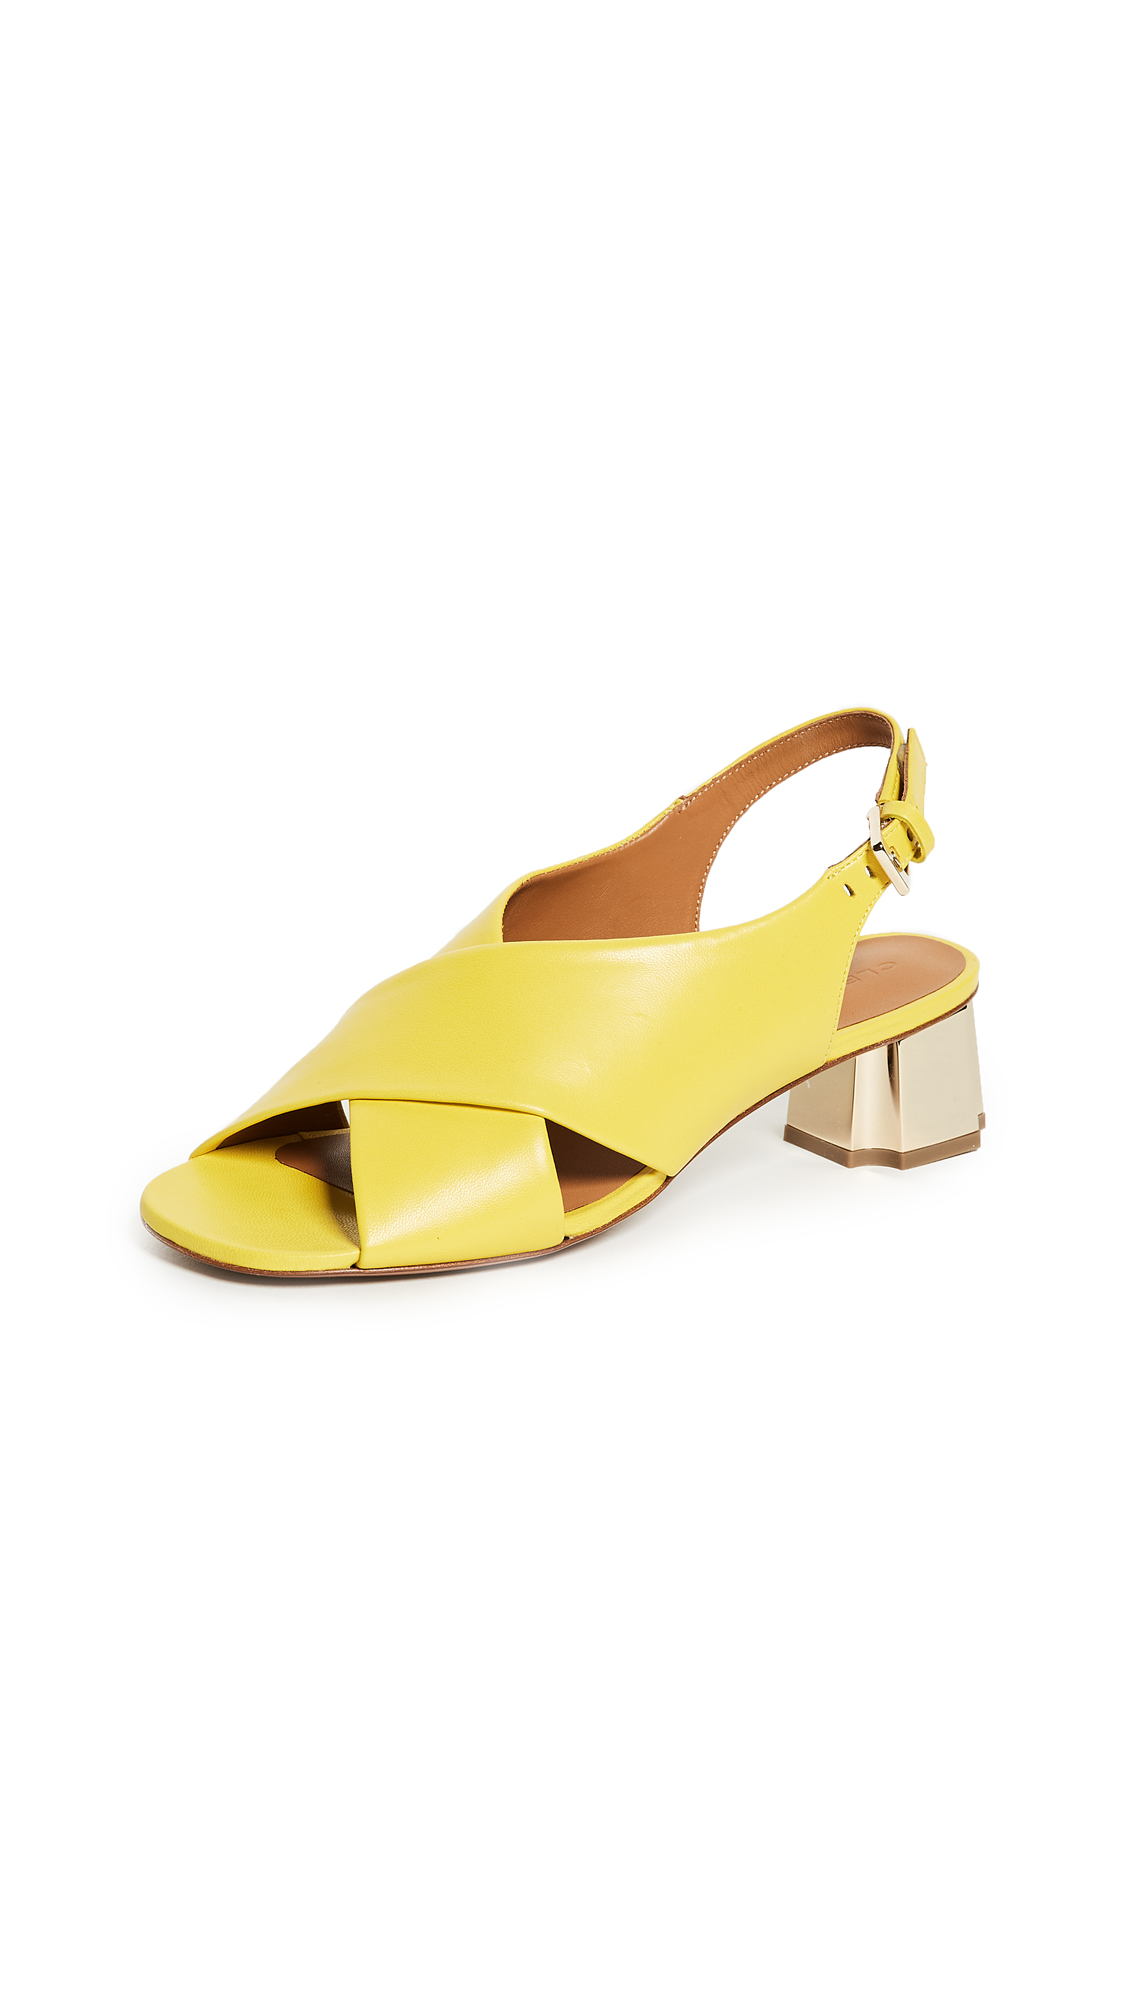 Robert Clergerie Laora Slingback Pumps - Lemon